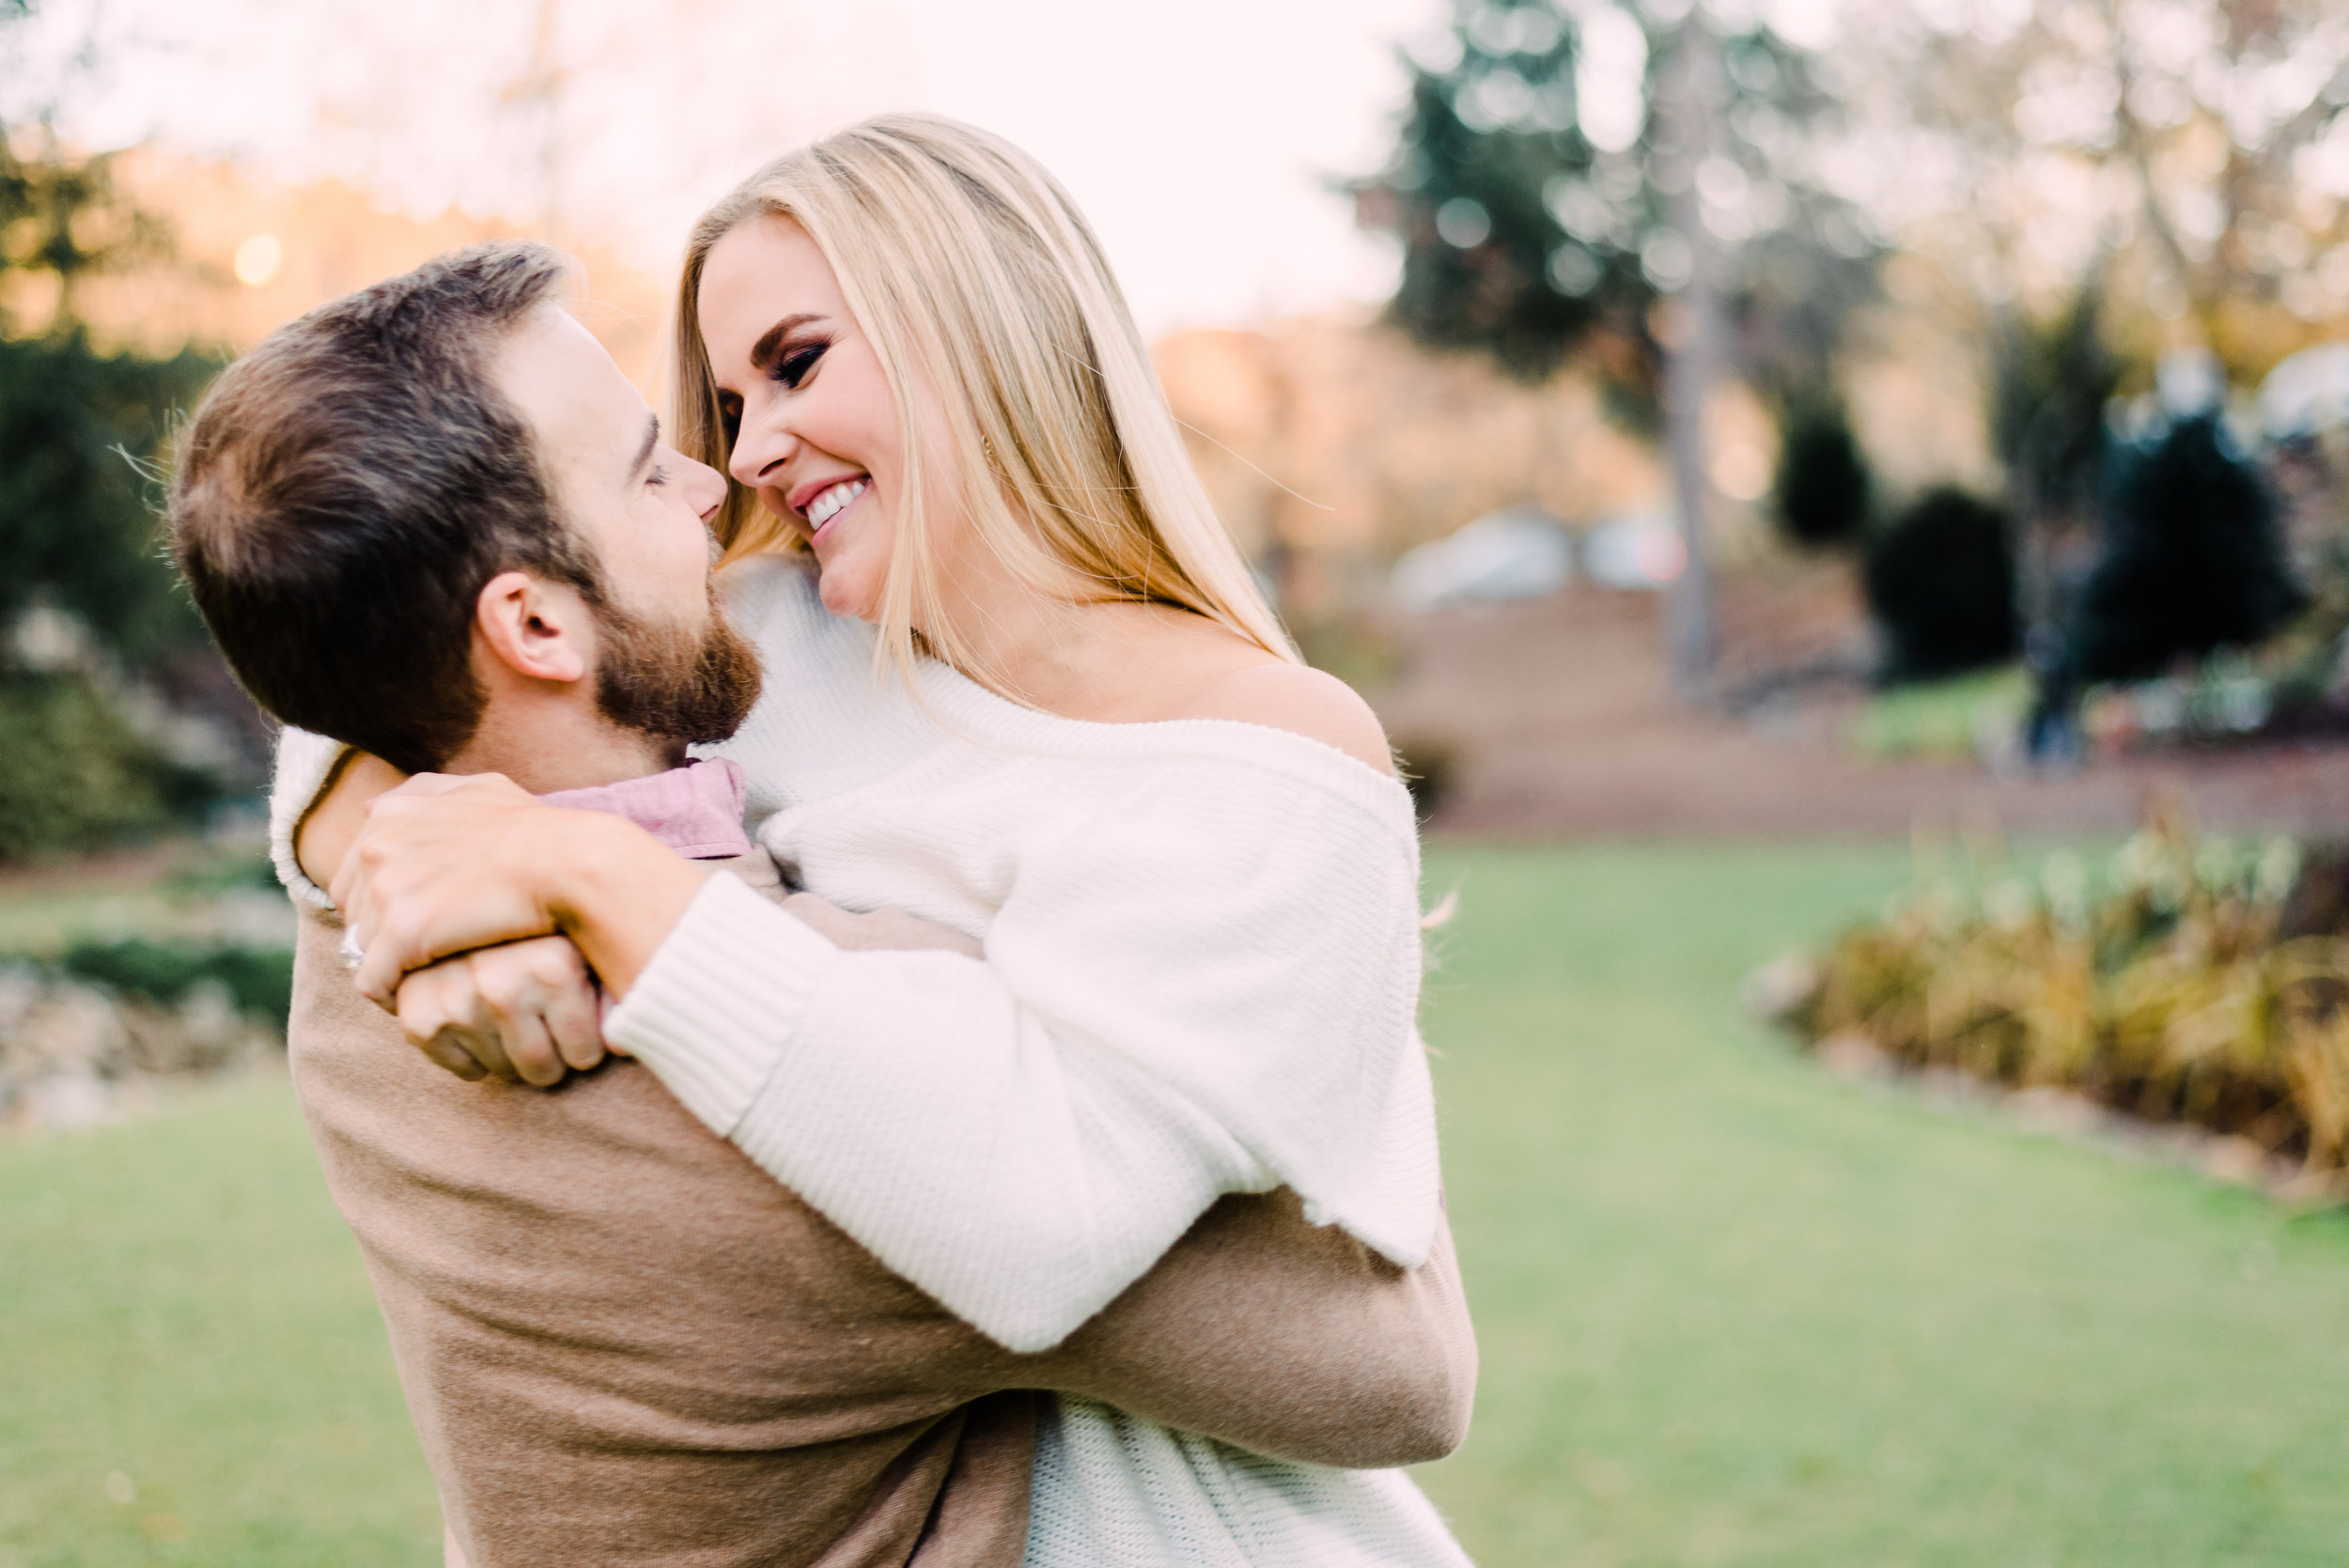 Kirby_Mobley_engaged-106.jpg